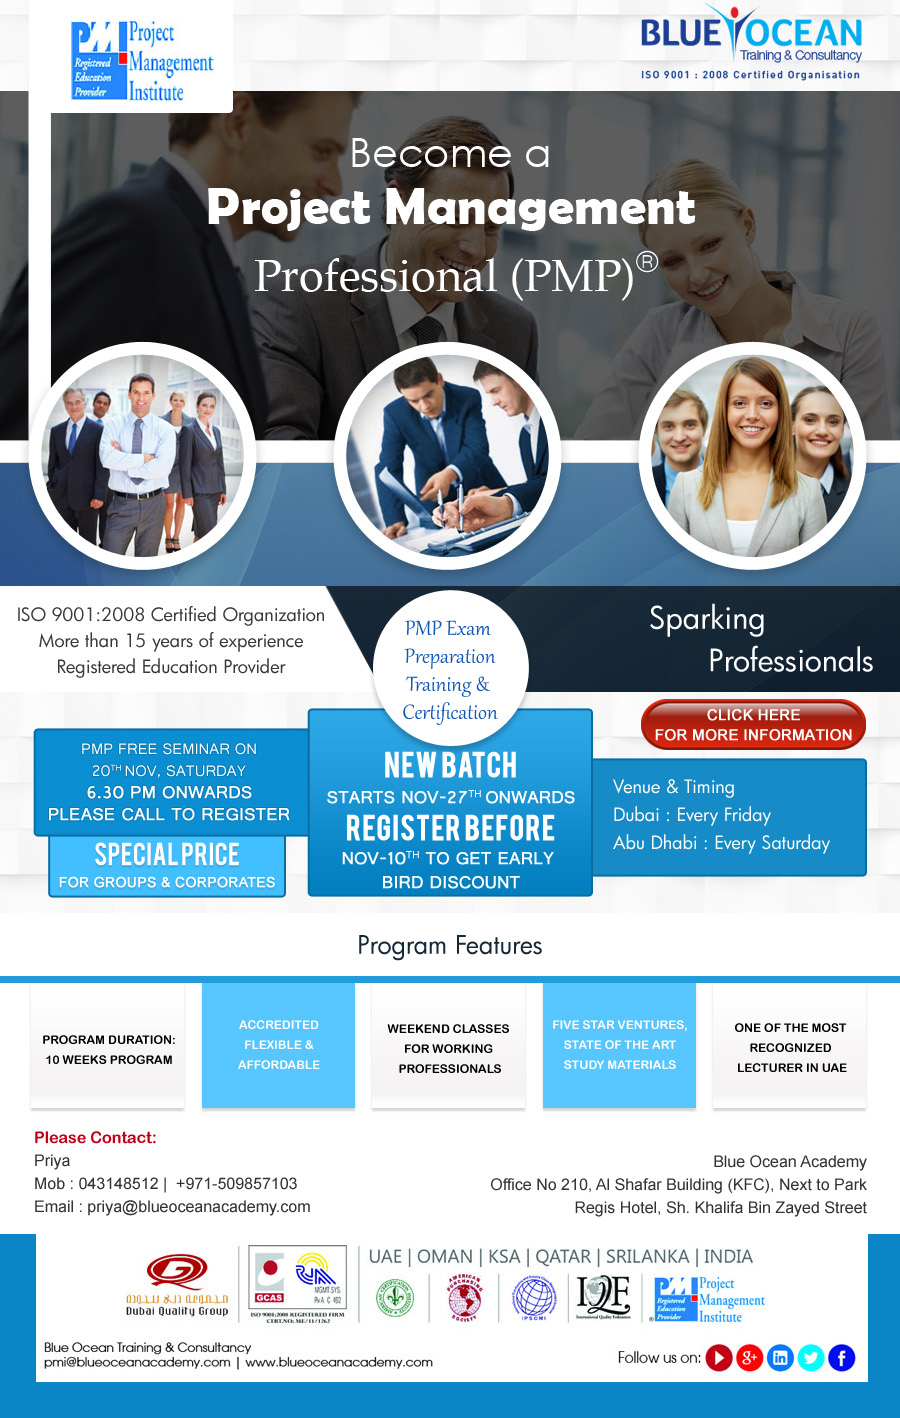 Become a Project Management Professional (PMP)